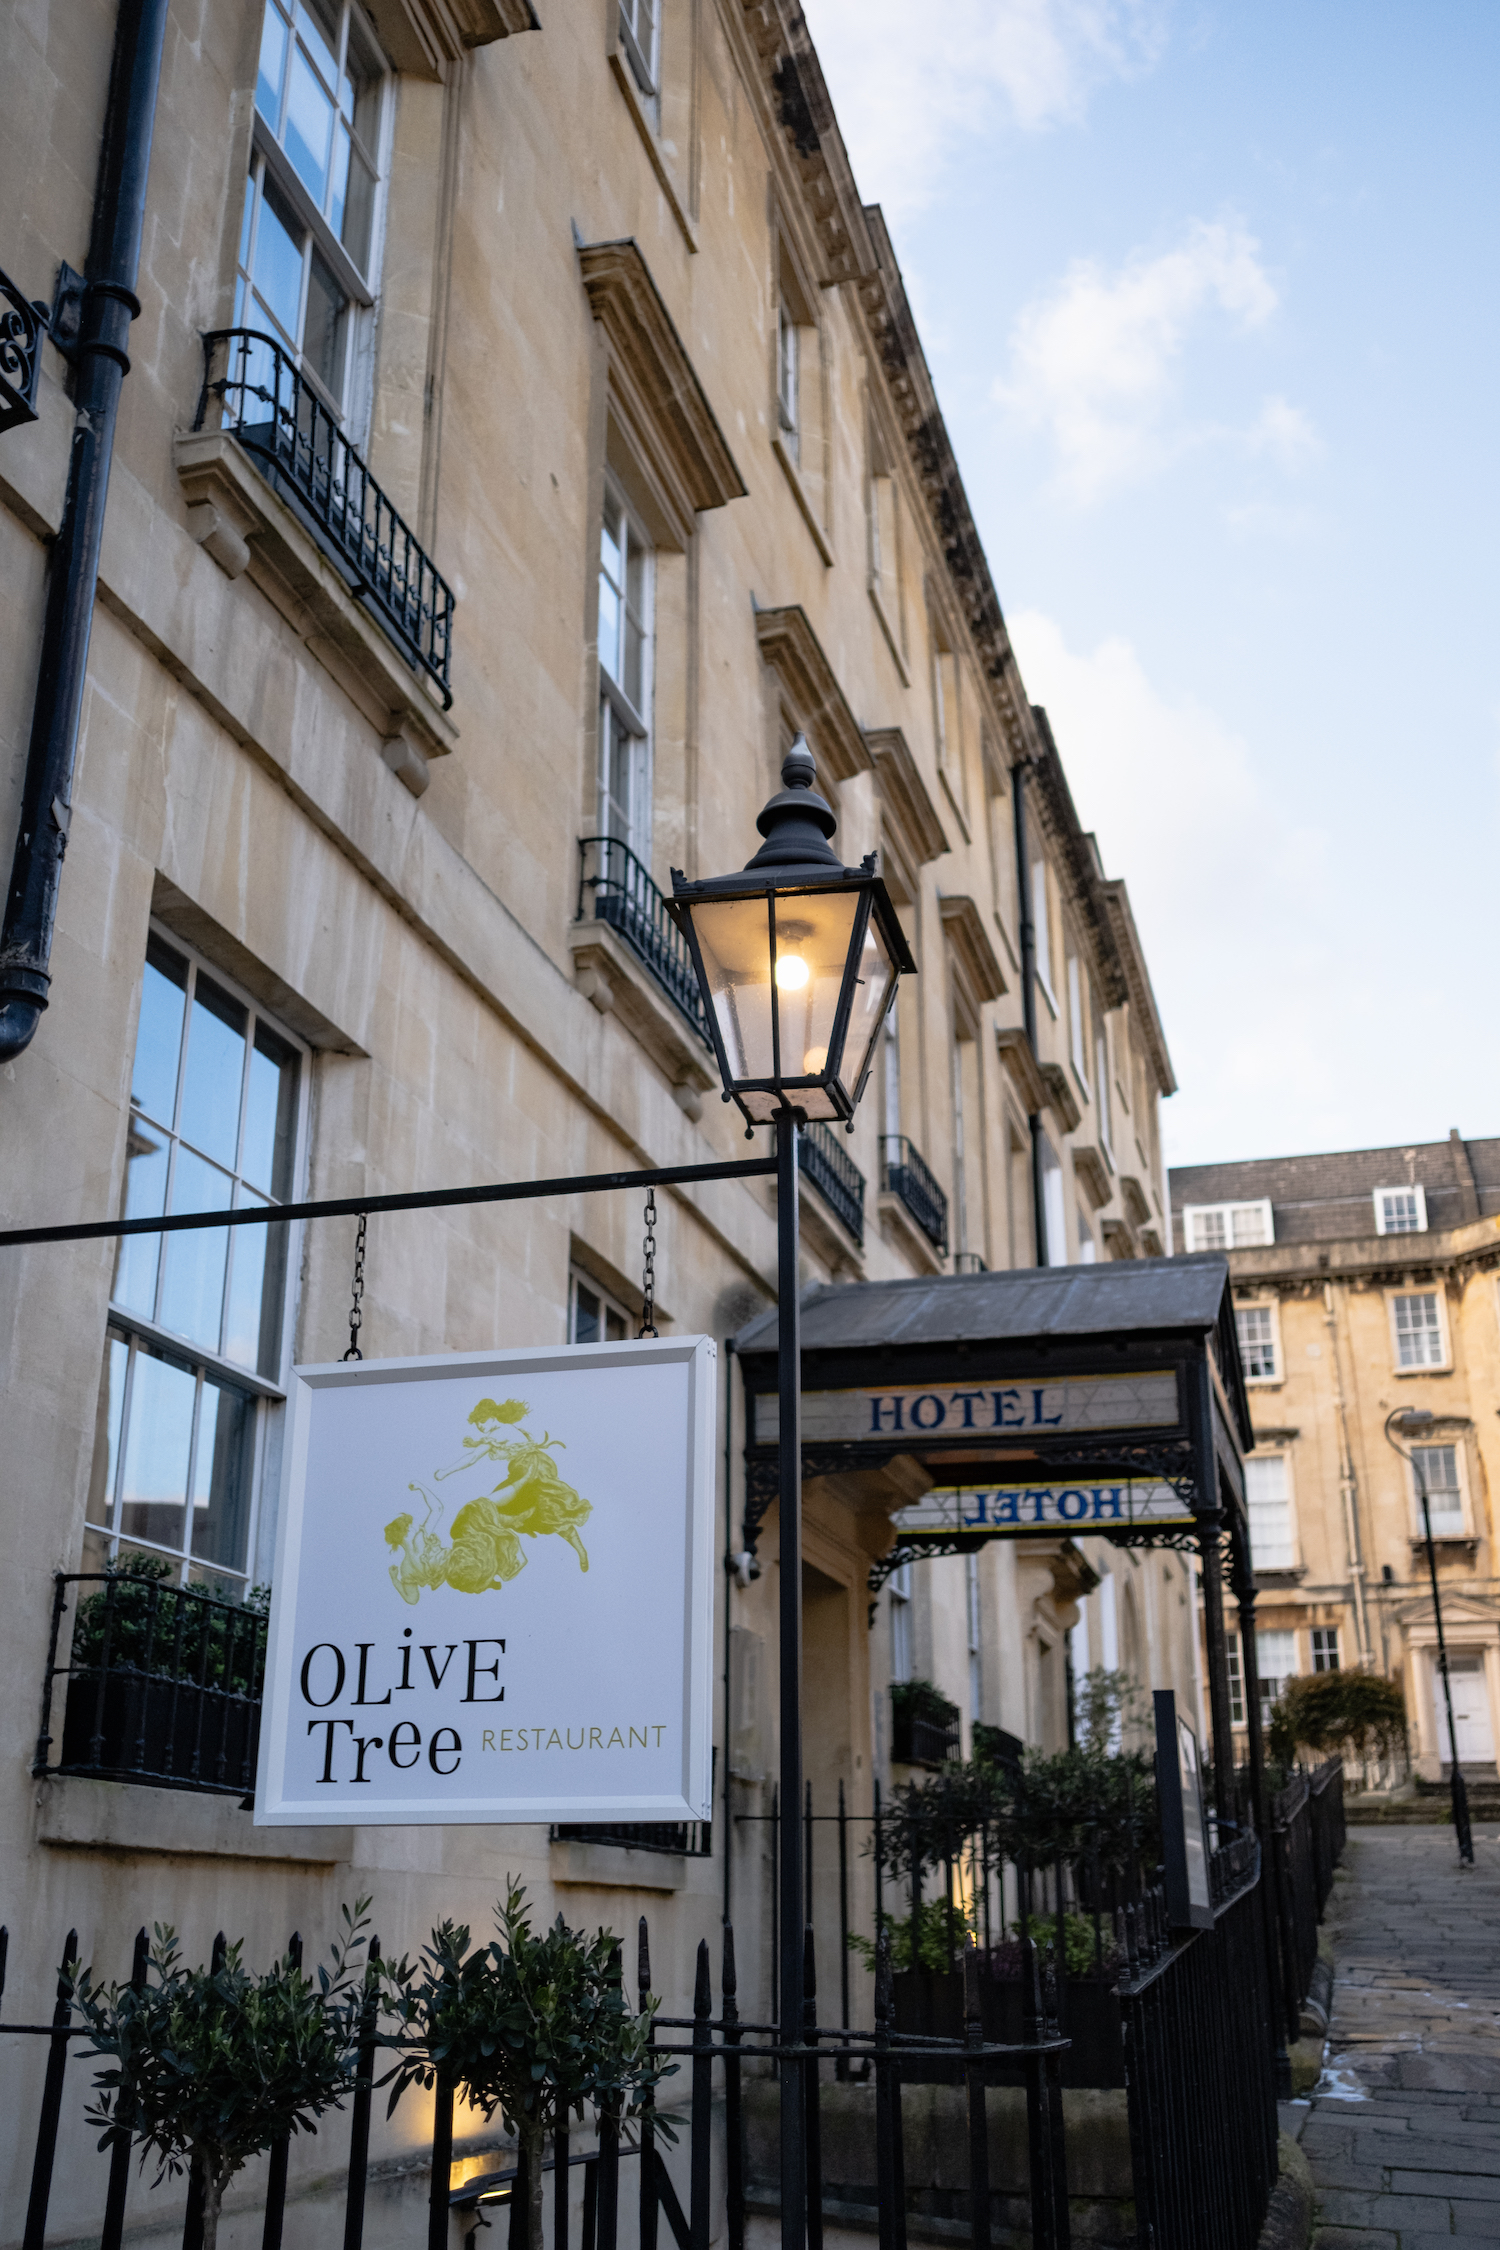 Olive Tree Michelin Starred Restaurant in Bath, England - Queensberry Hotel, Bath, England - by Ben Holbrook from DriftwoodJournals.com-50